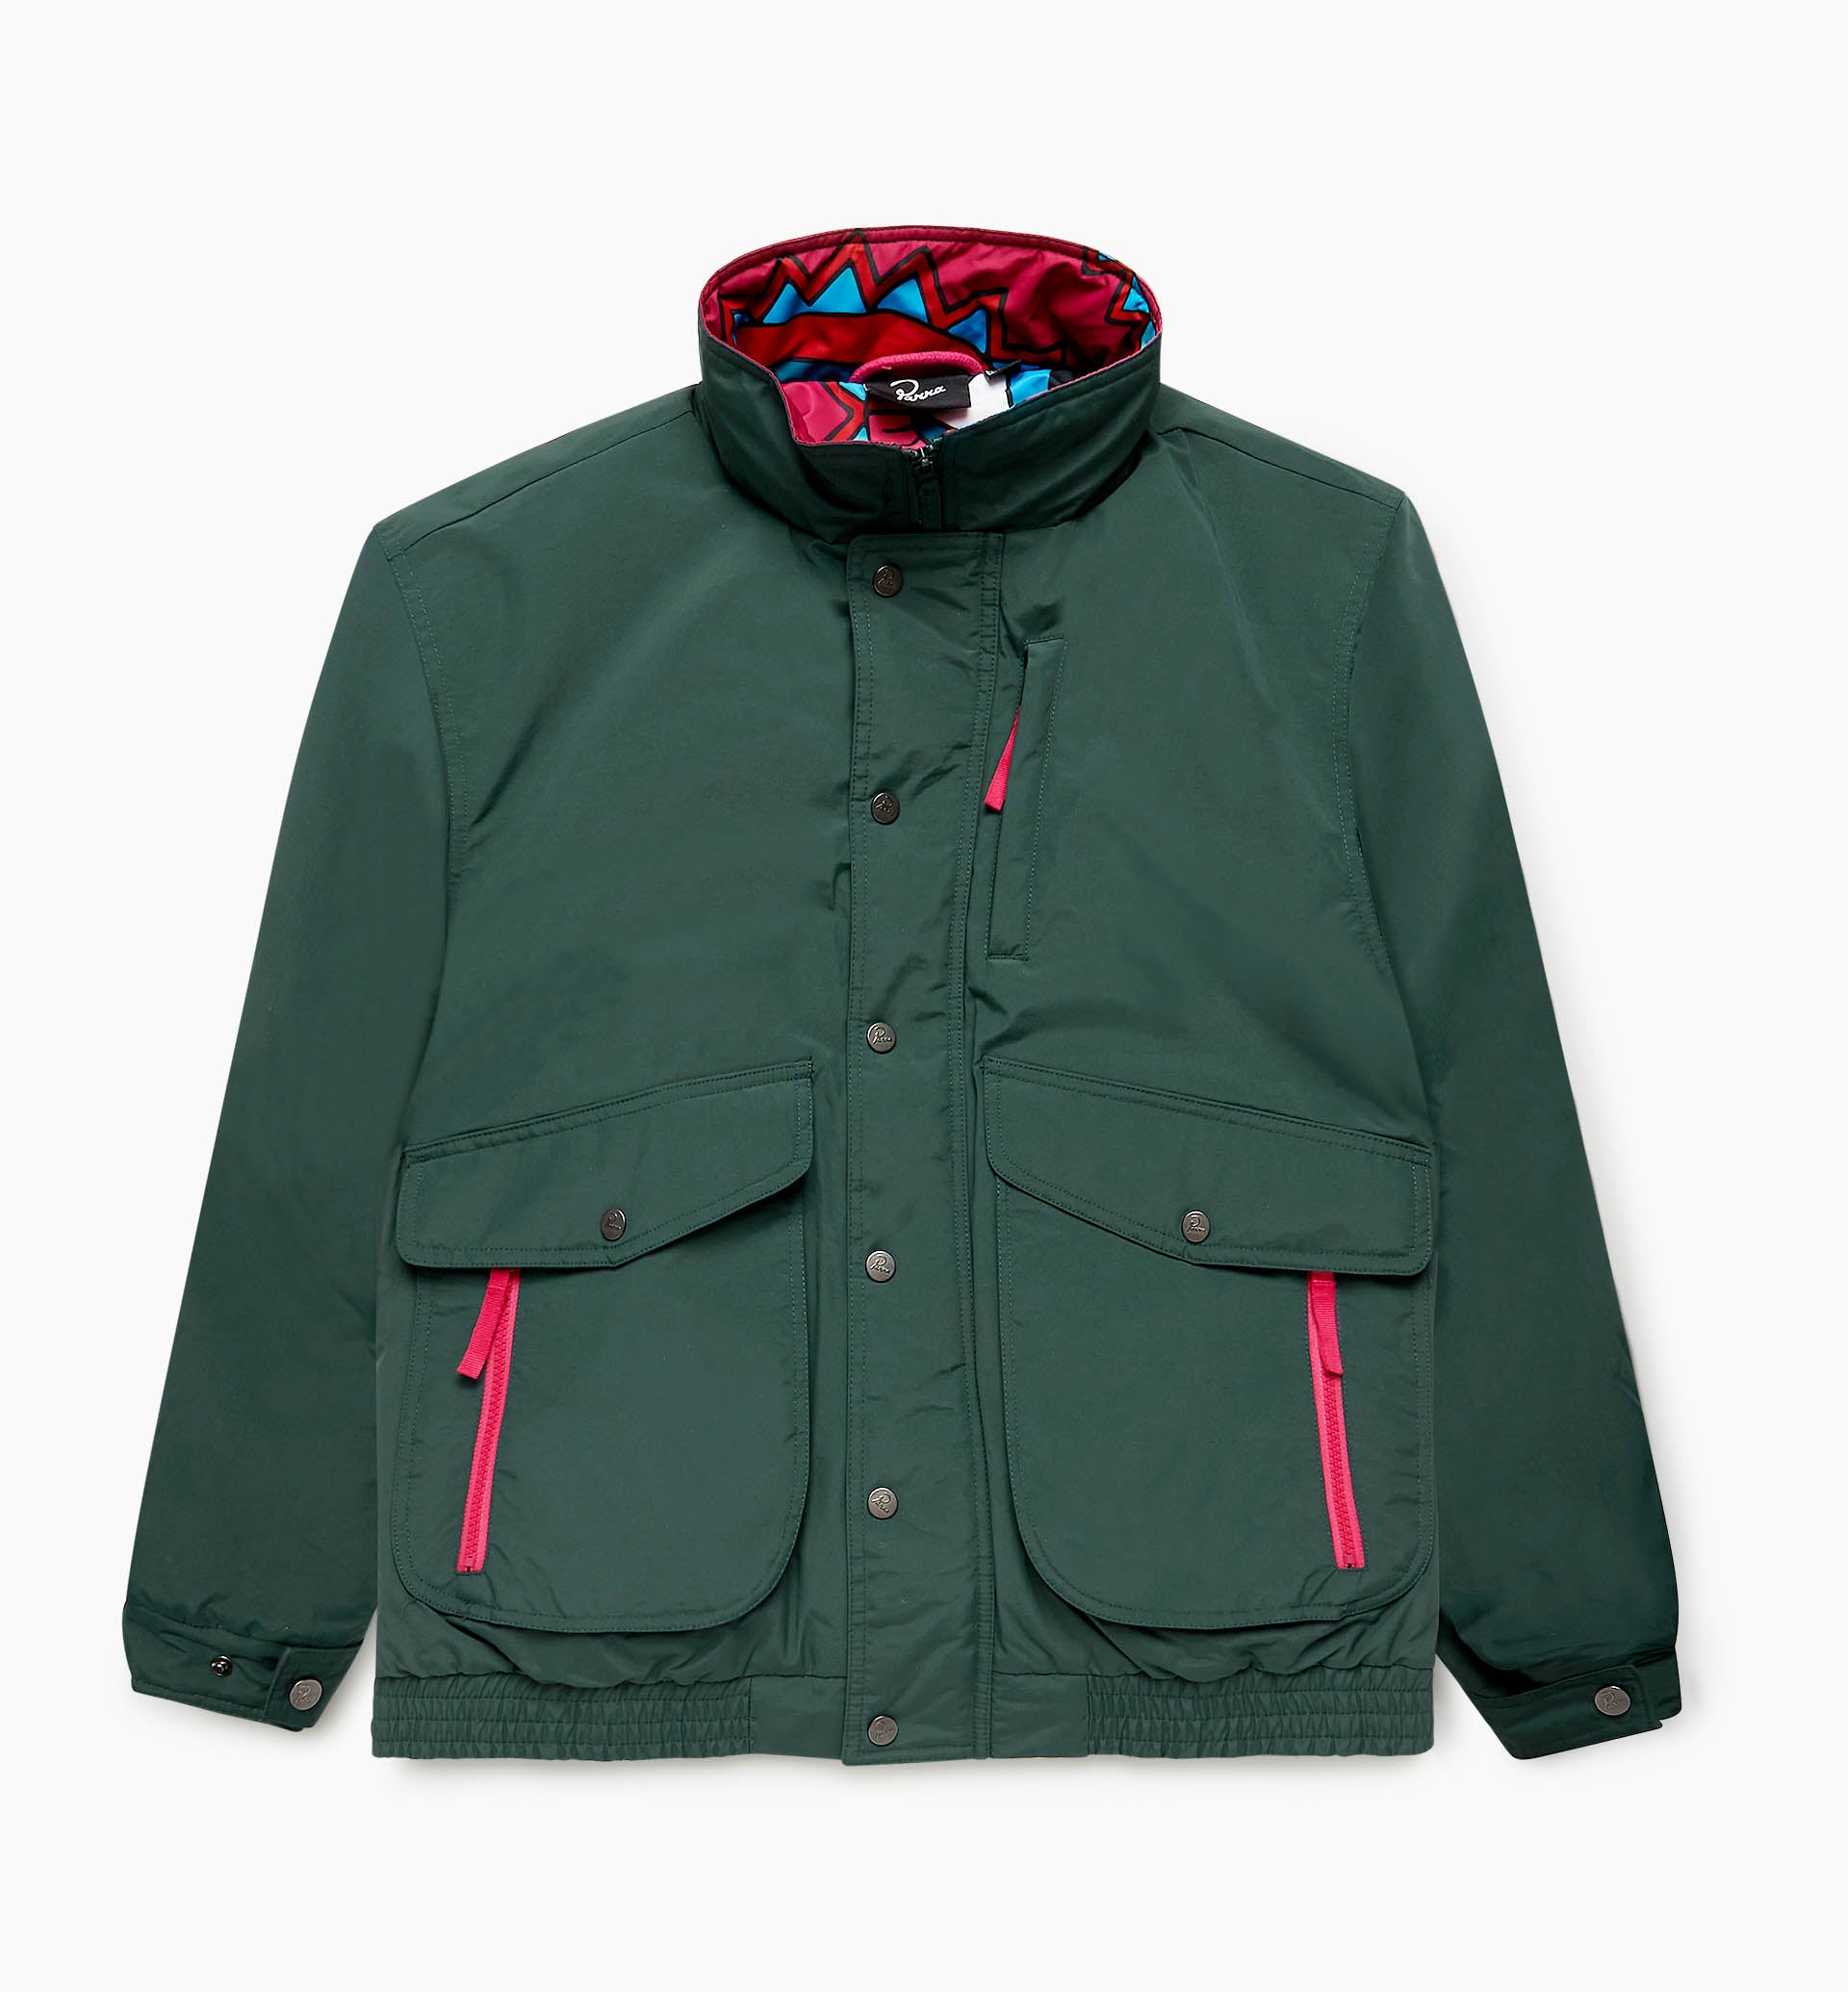 Parra - eyes open jacket